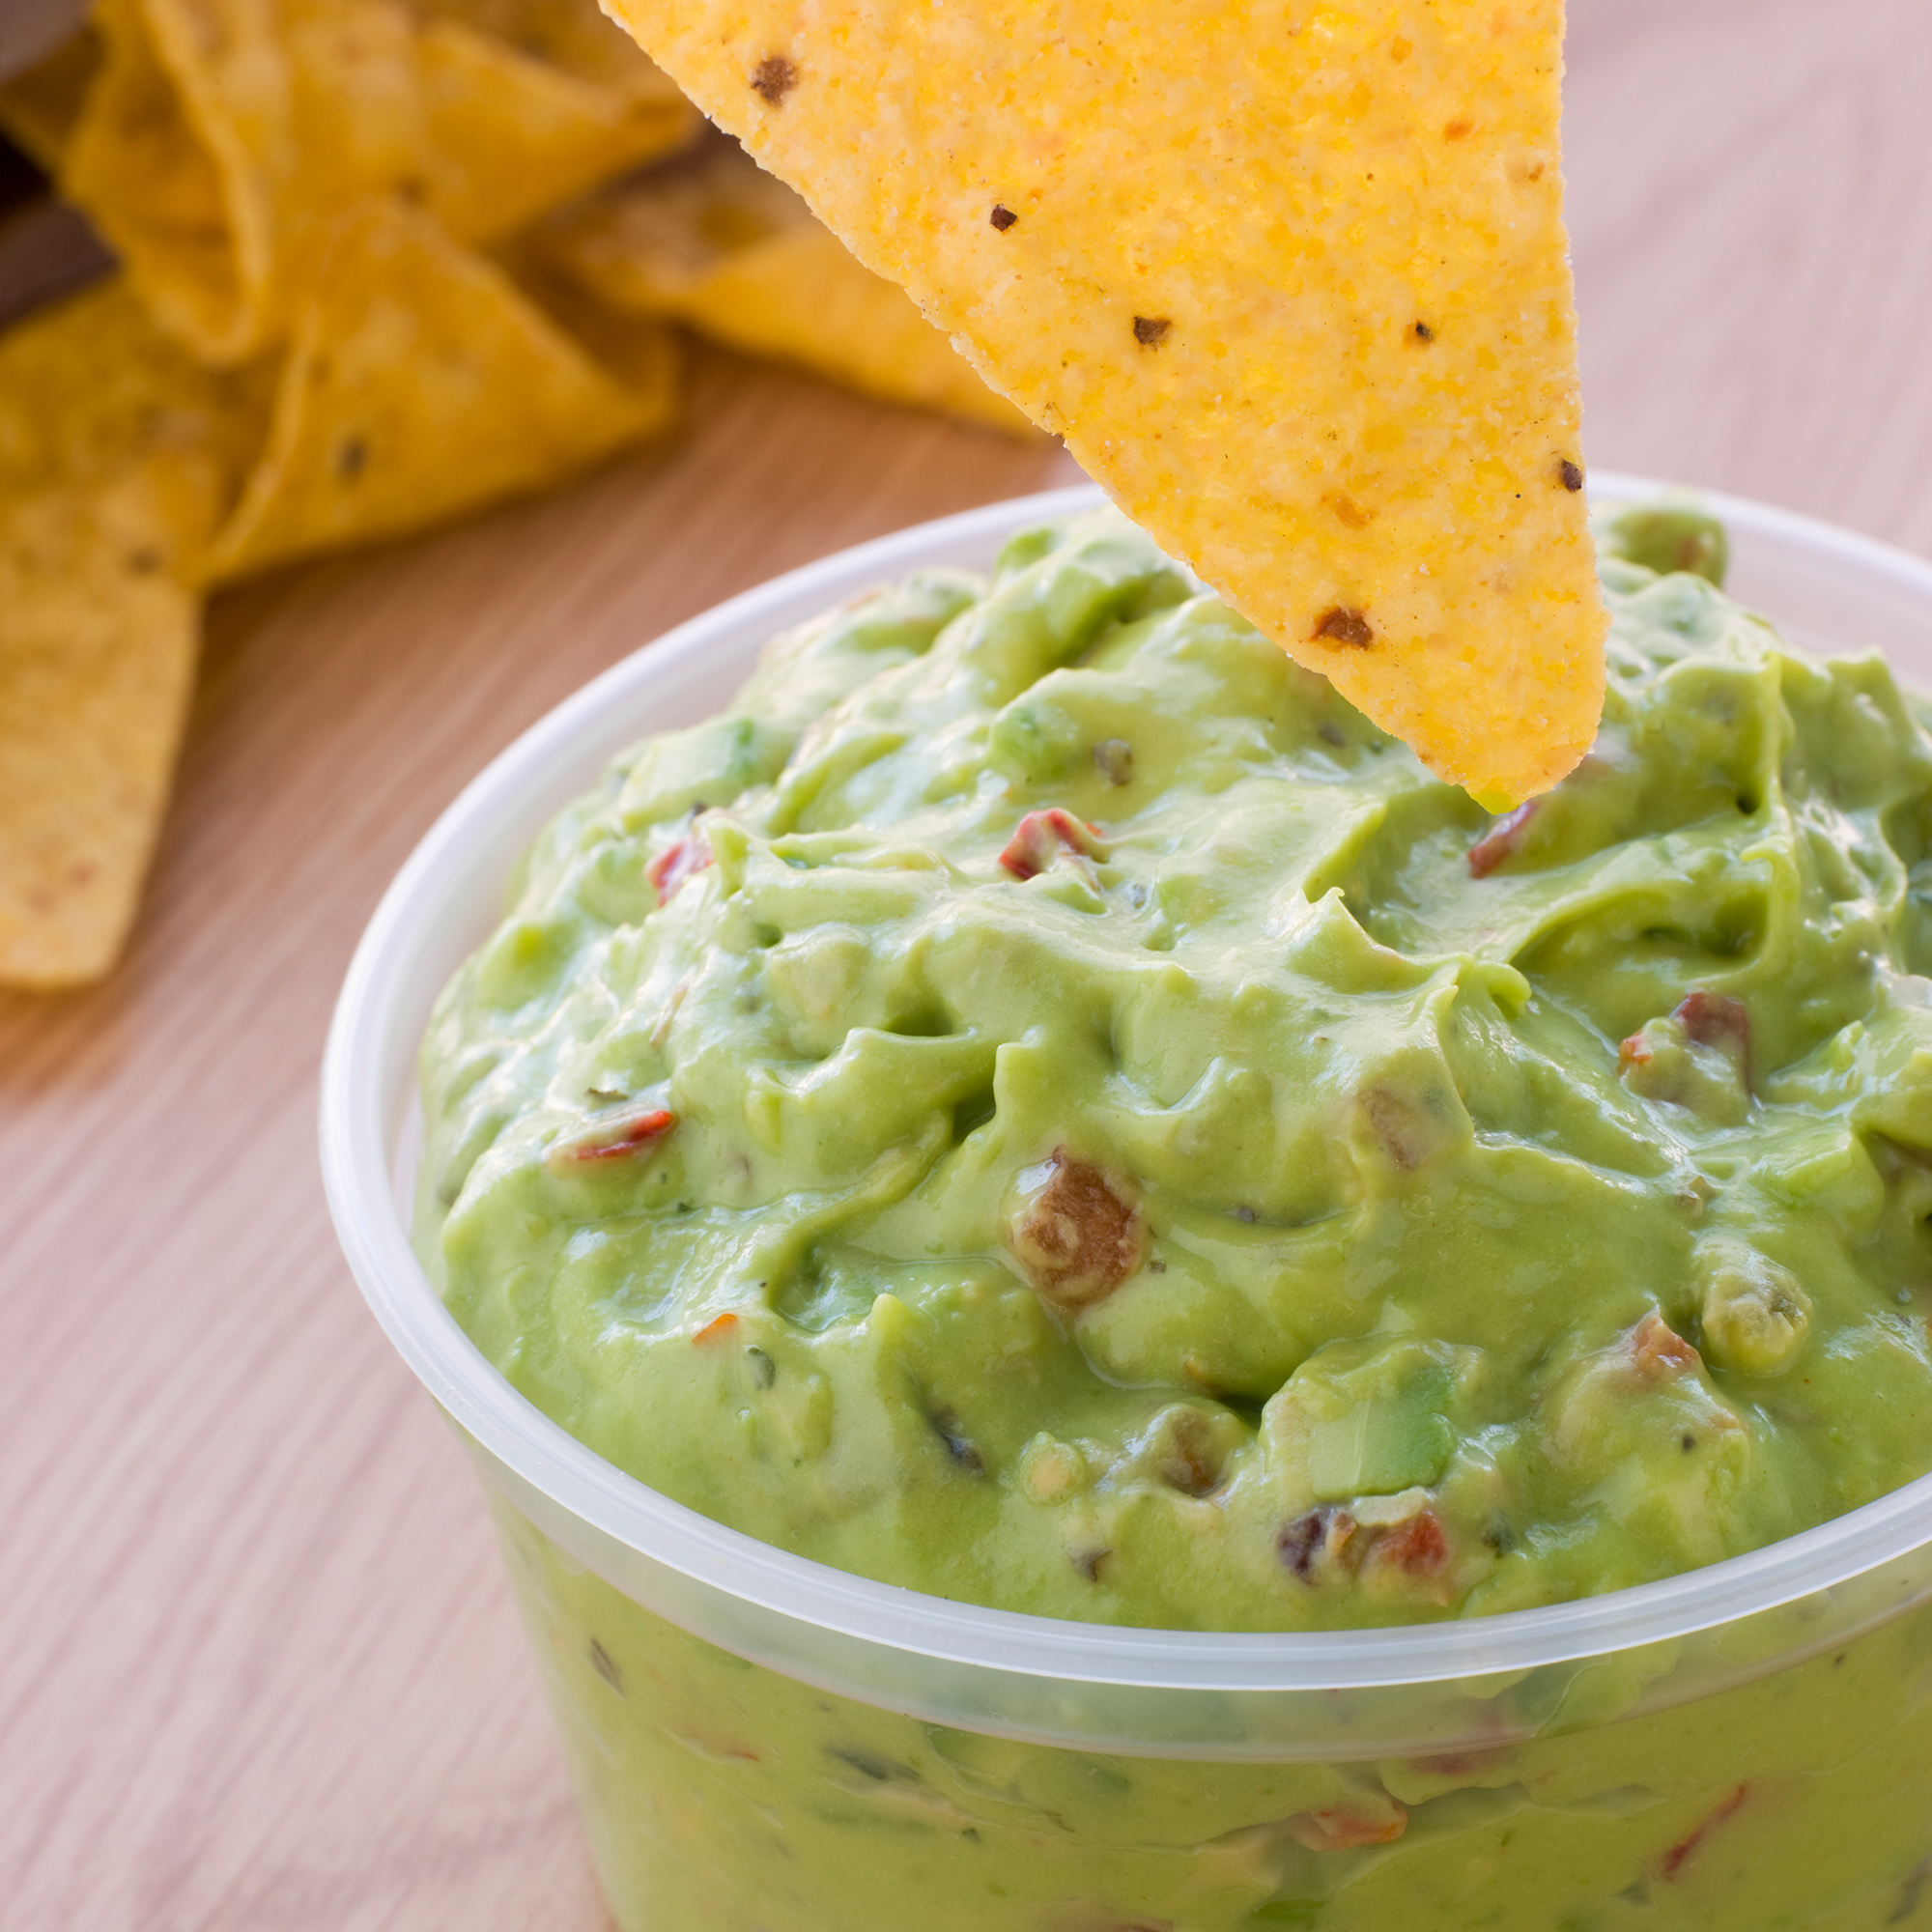 Store Bought Guacamole Dip